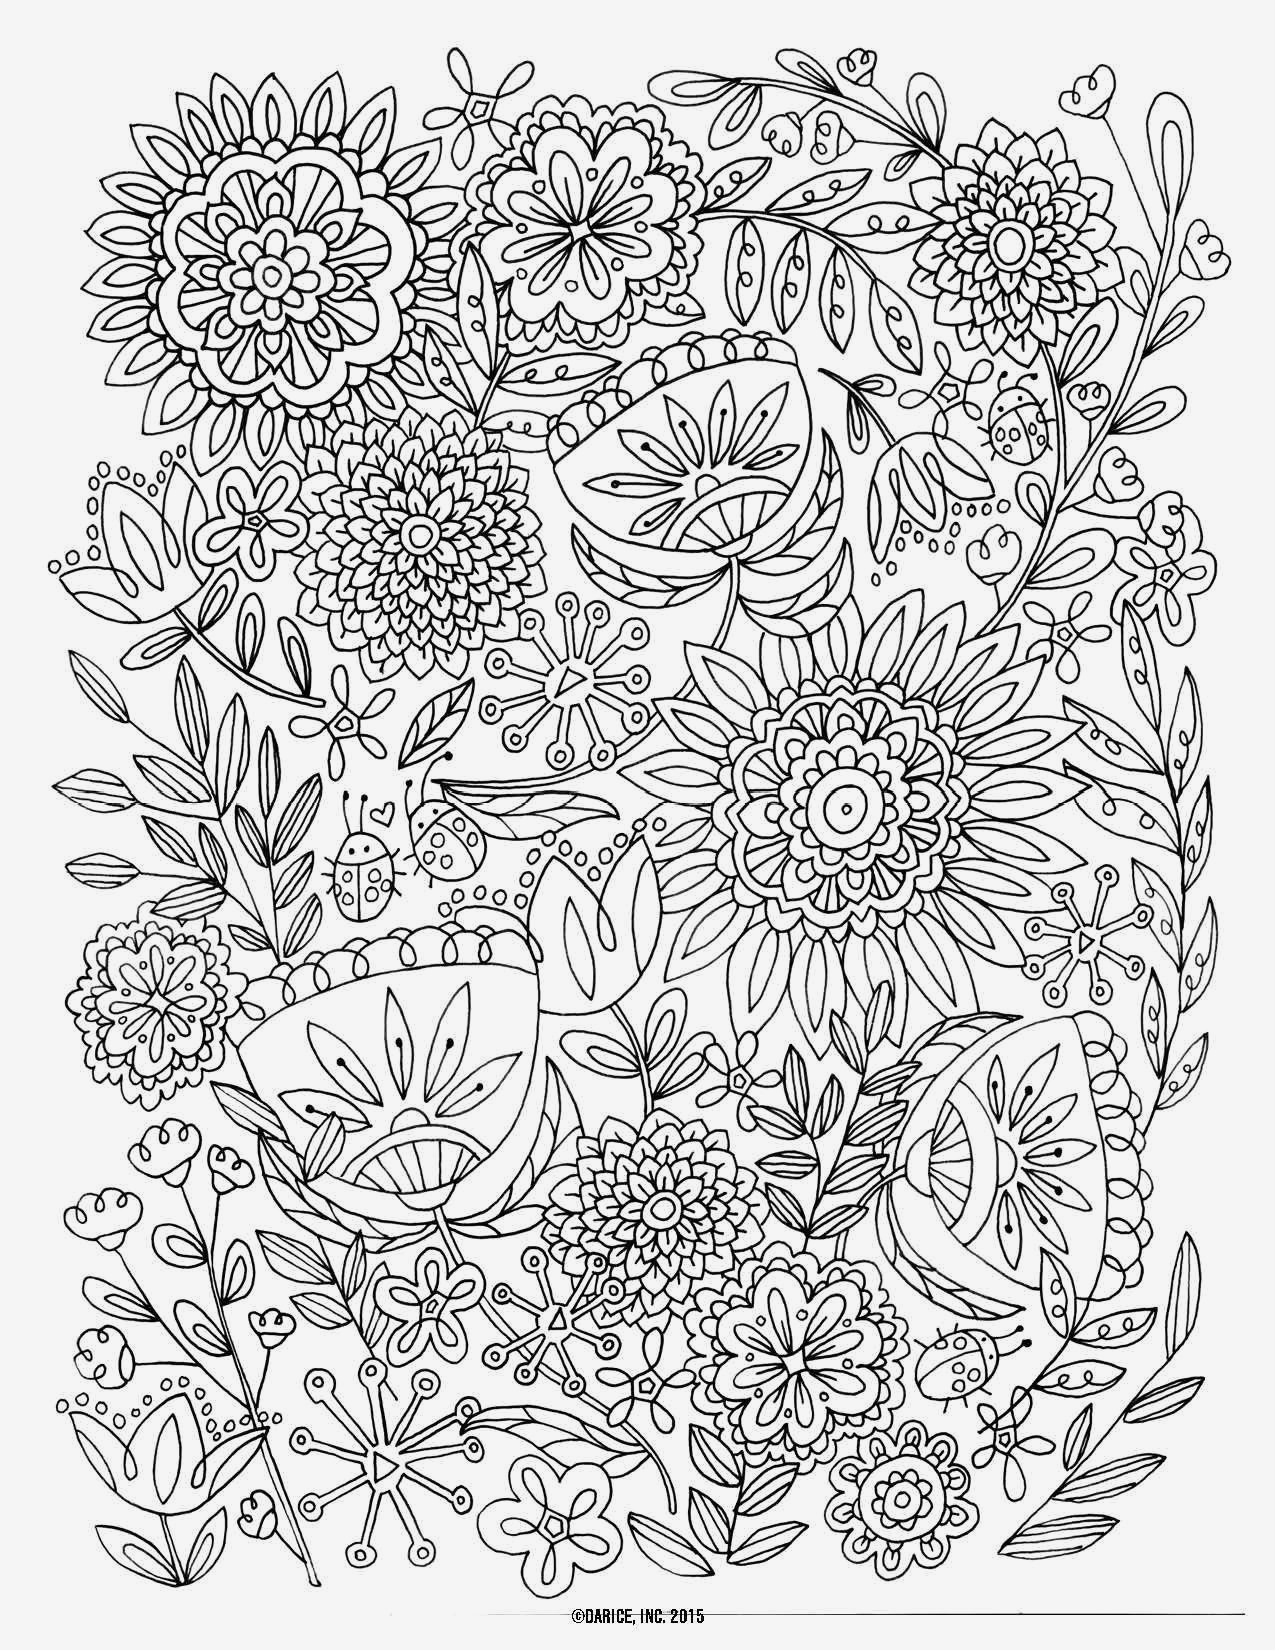 free coloring pages for boy Collection-Printable Superhero Coloring Pages Best Easy Superhero Cape Coloring Page Free Coloring Pages for Boys Best 2-p